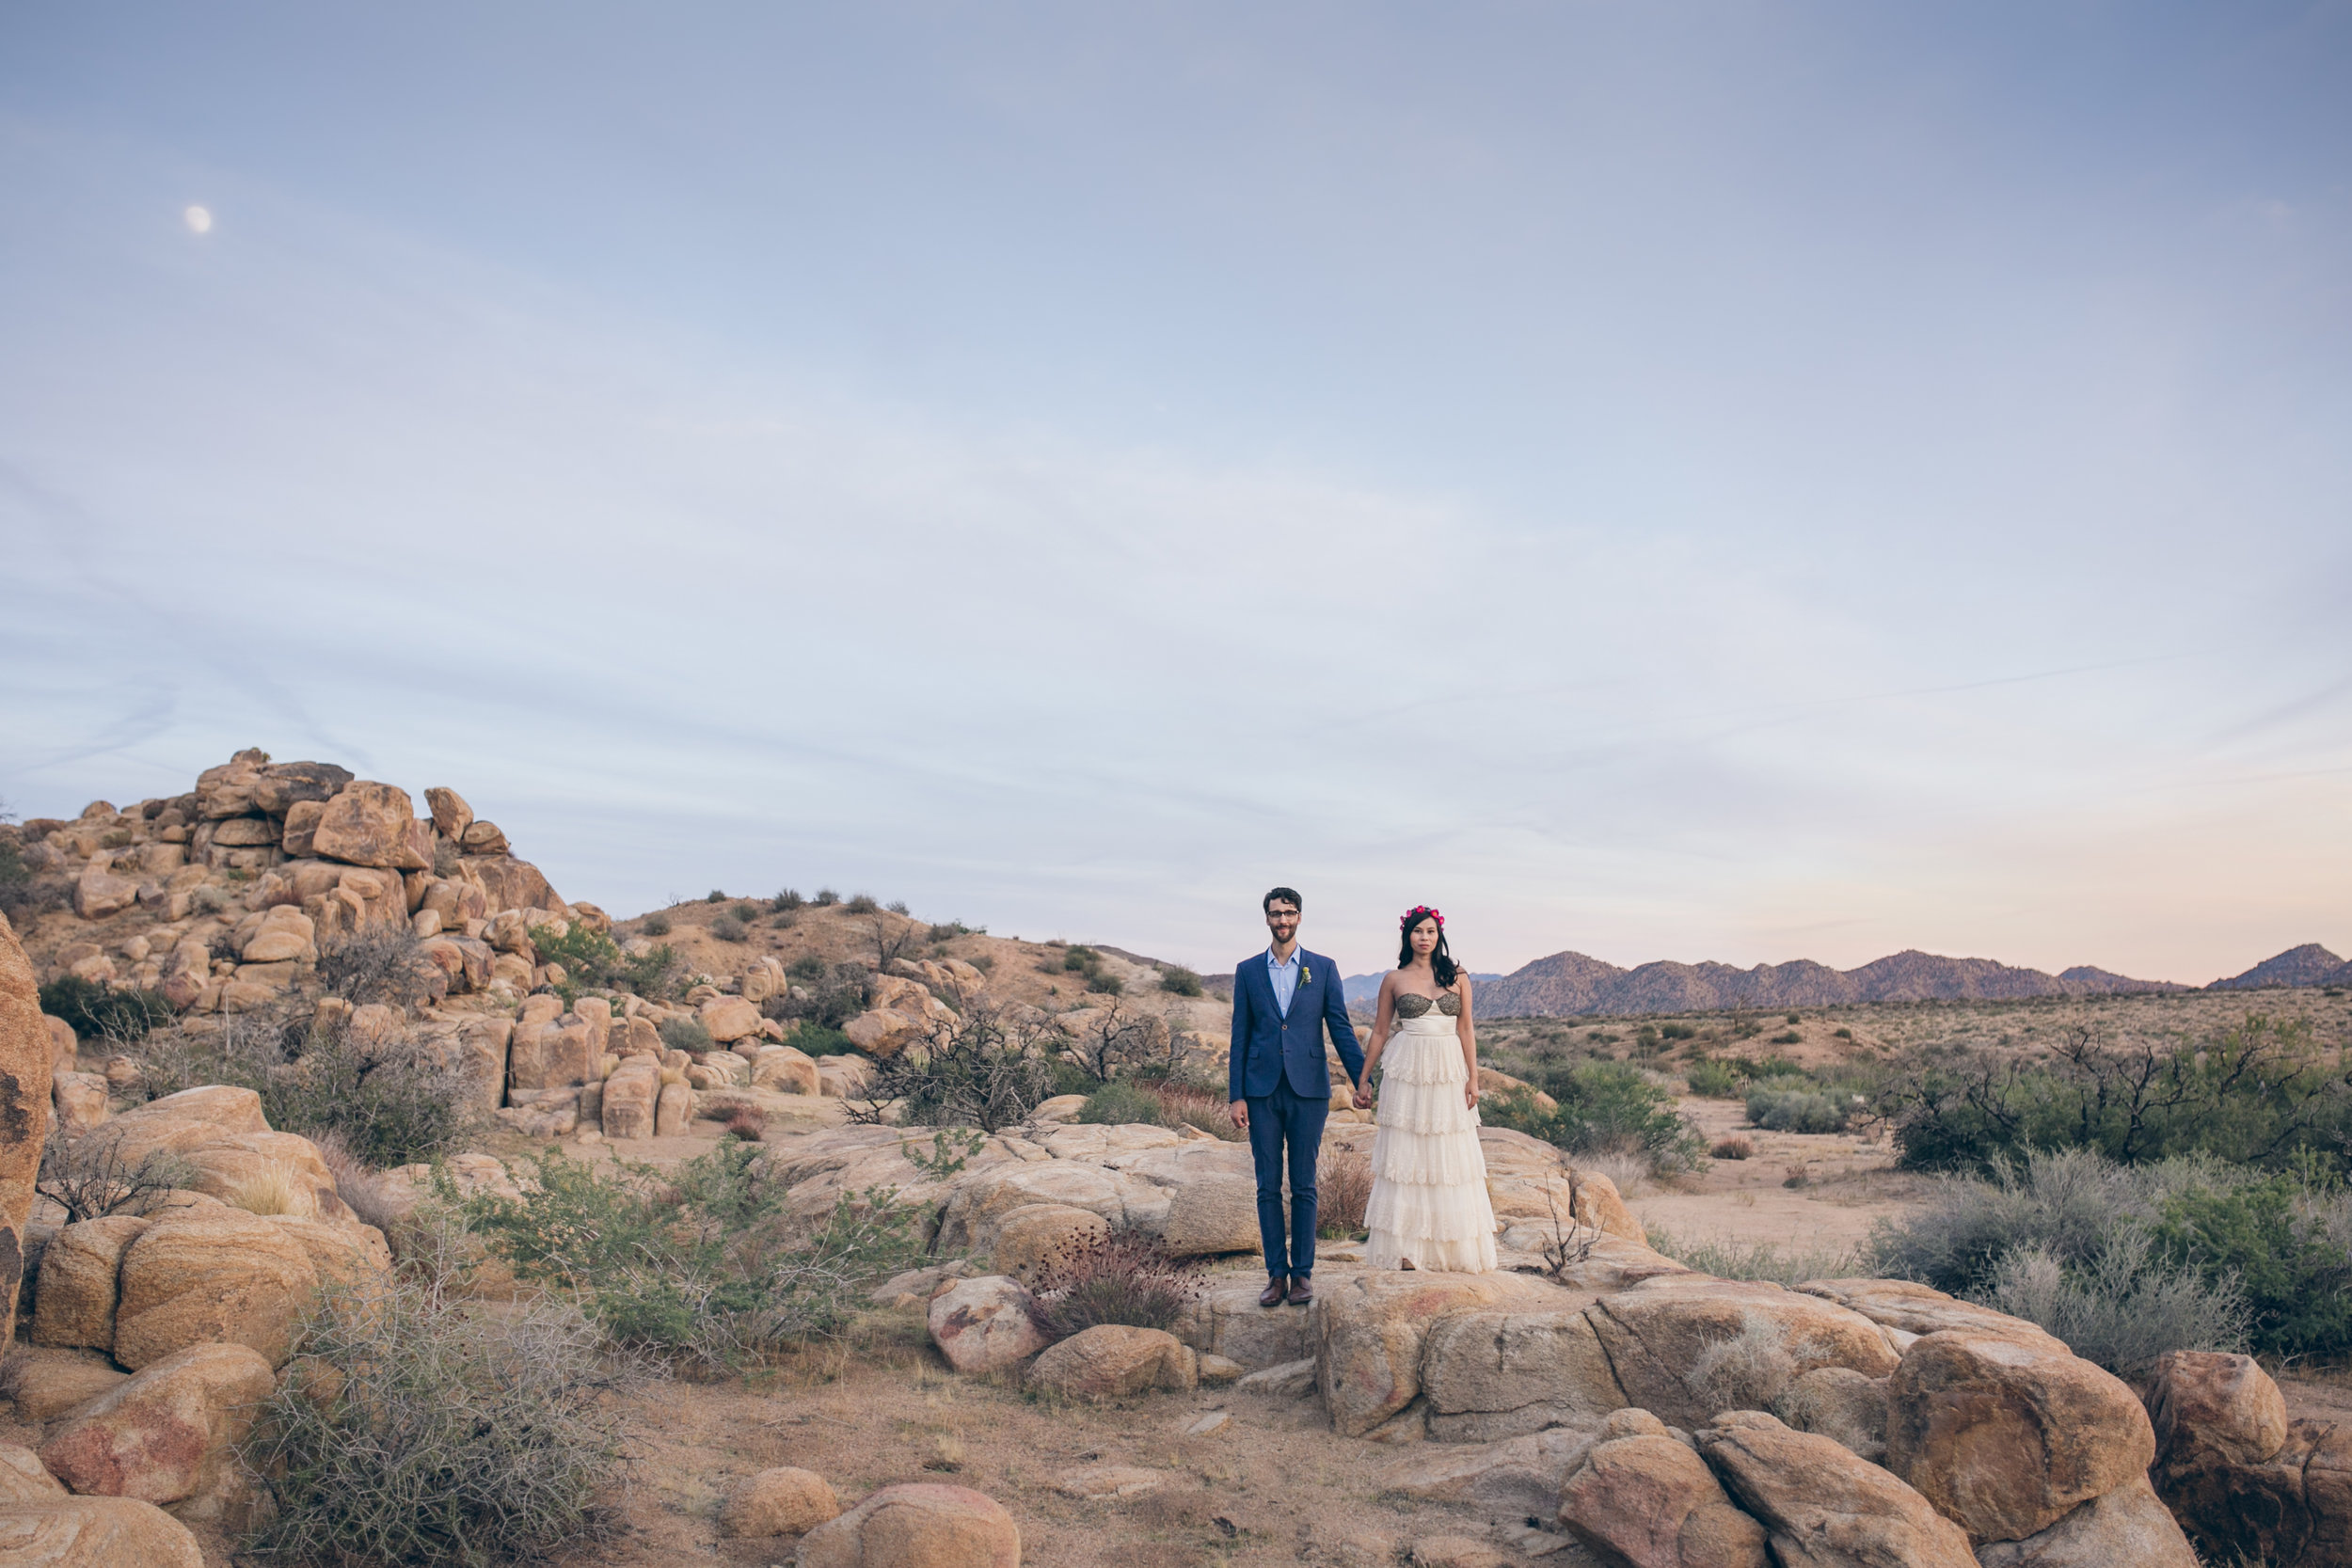 Joshua-Tree-Wedding-Rimrock-Ranch-0041-021030.jpg